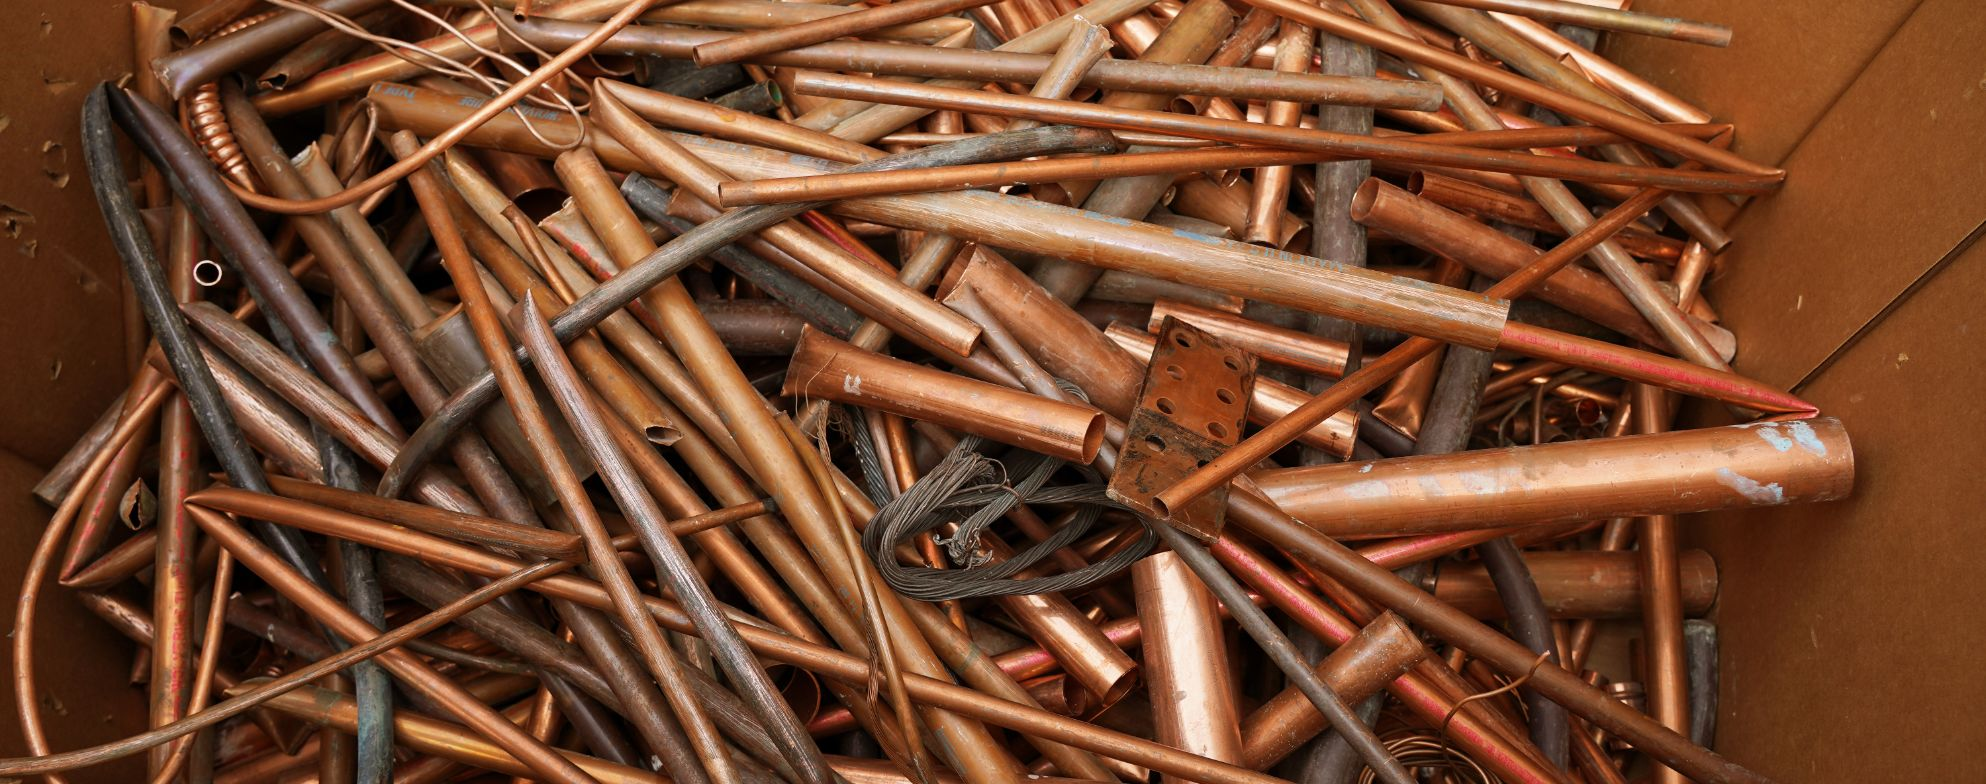 How to Talk to a Scrap Copper Buyer